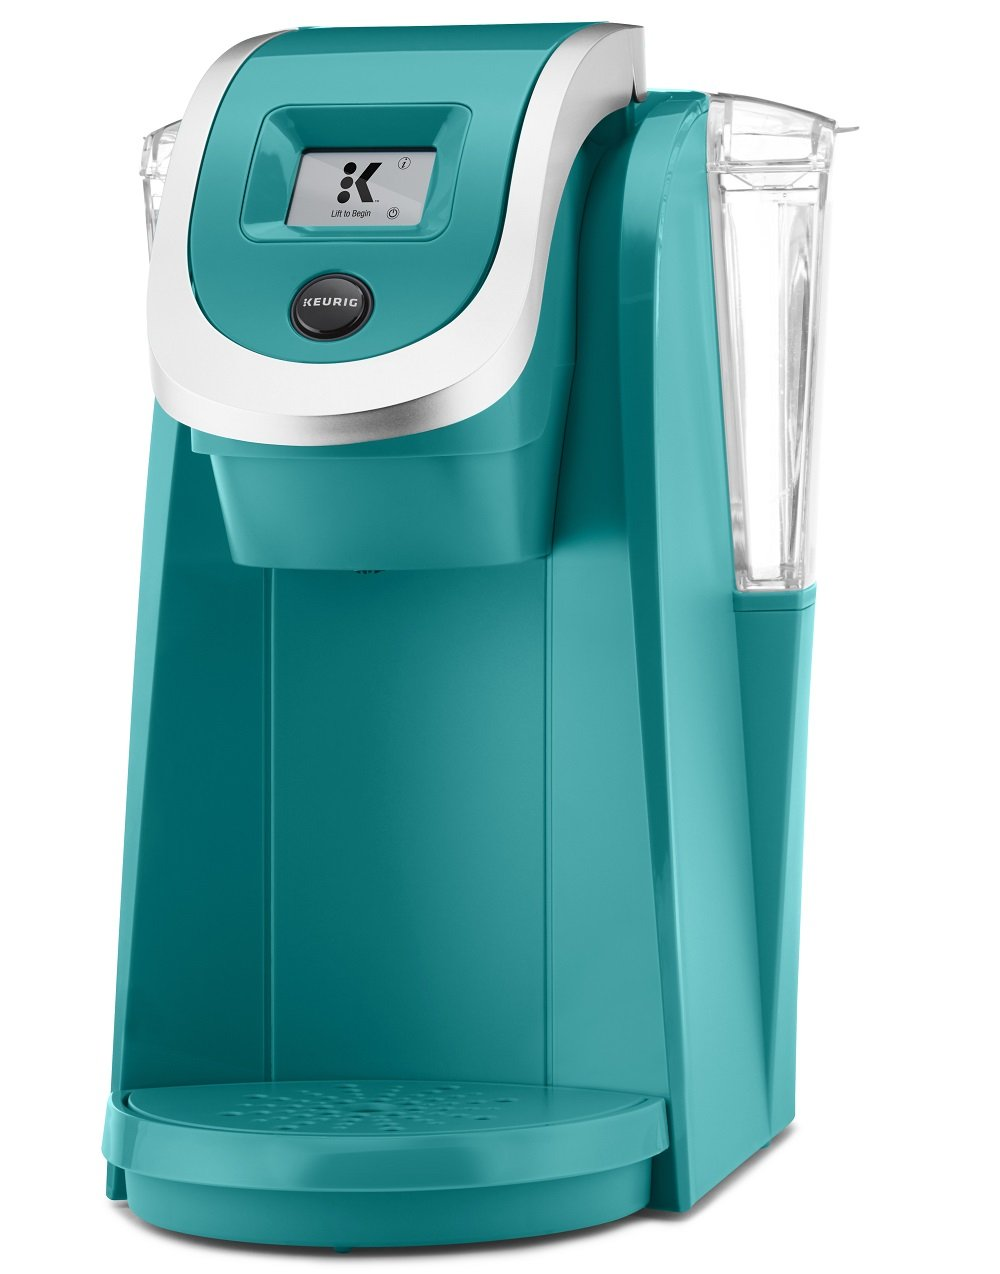 Keurig K250 Single Serve, Programmable K-Cup Pod Coffee Maker with strength control, Turquoise by Keurig (Image #4)